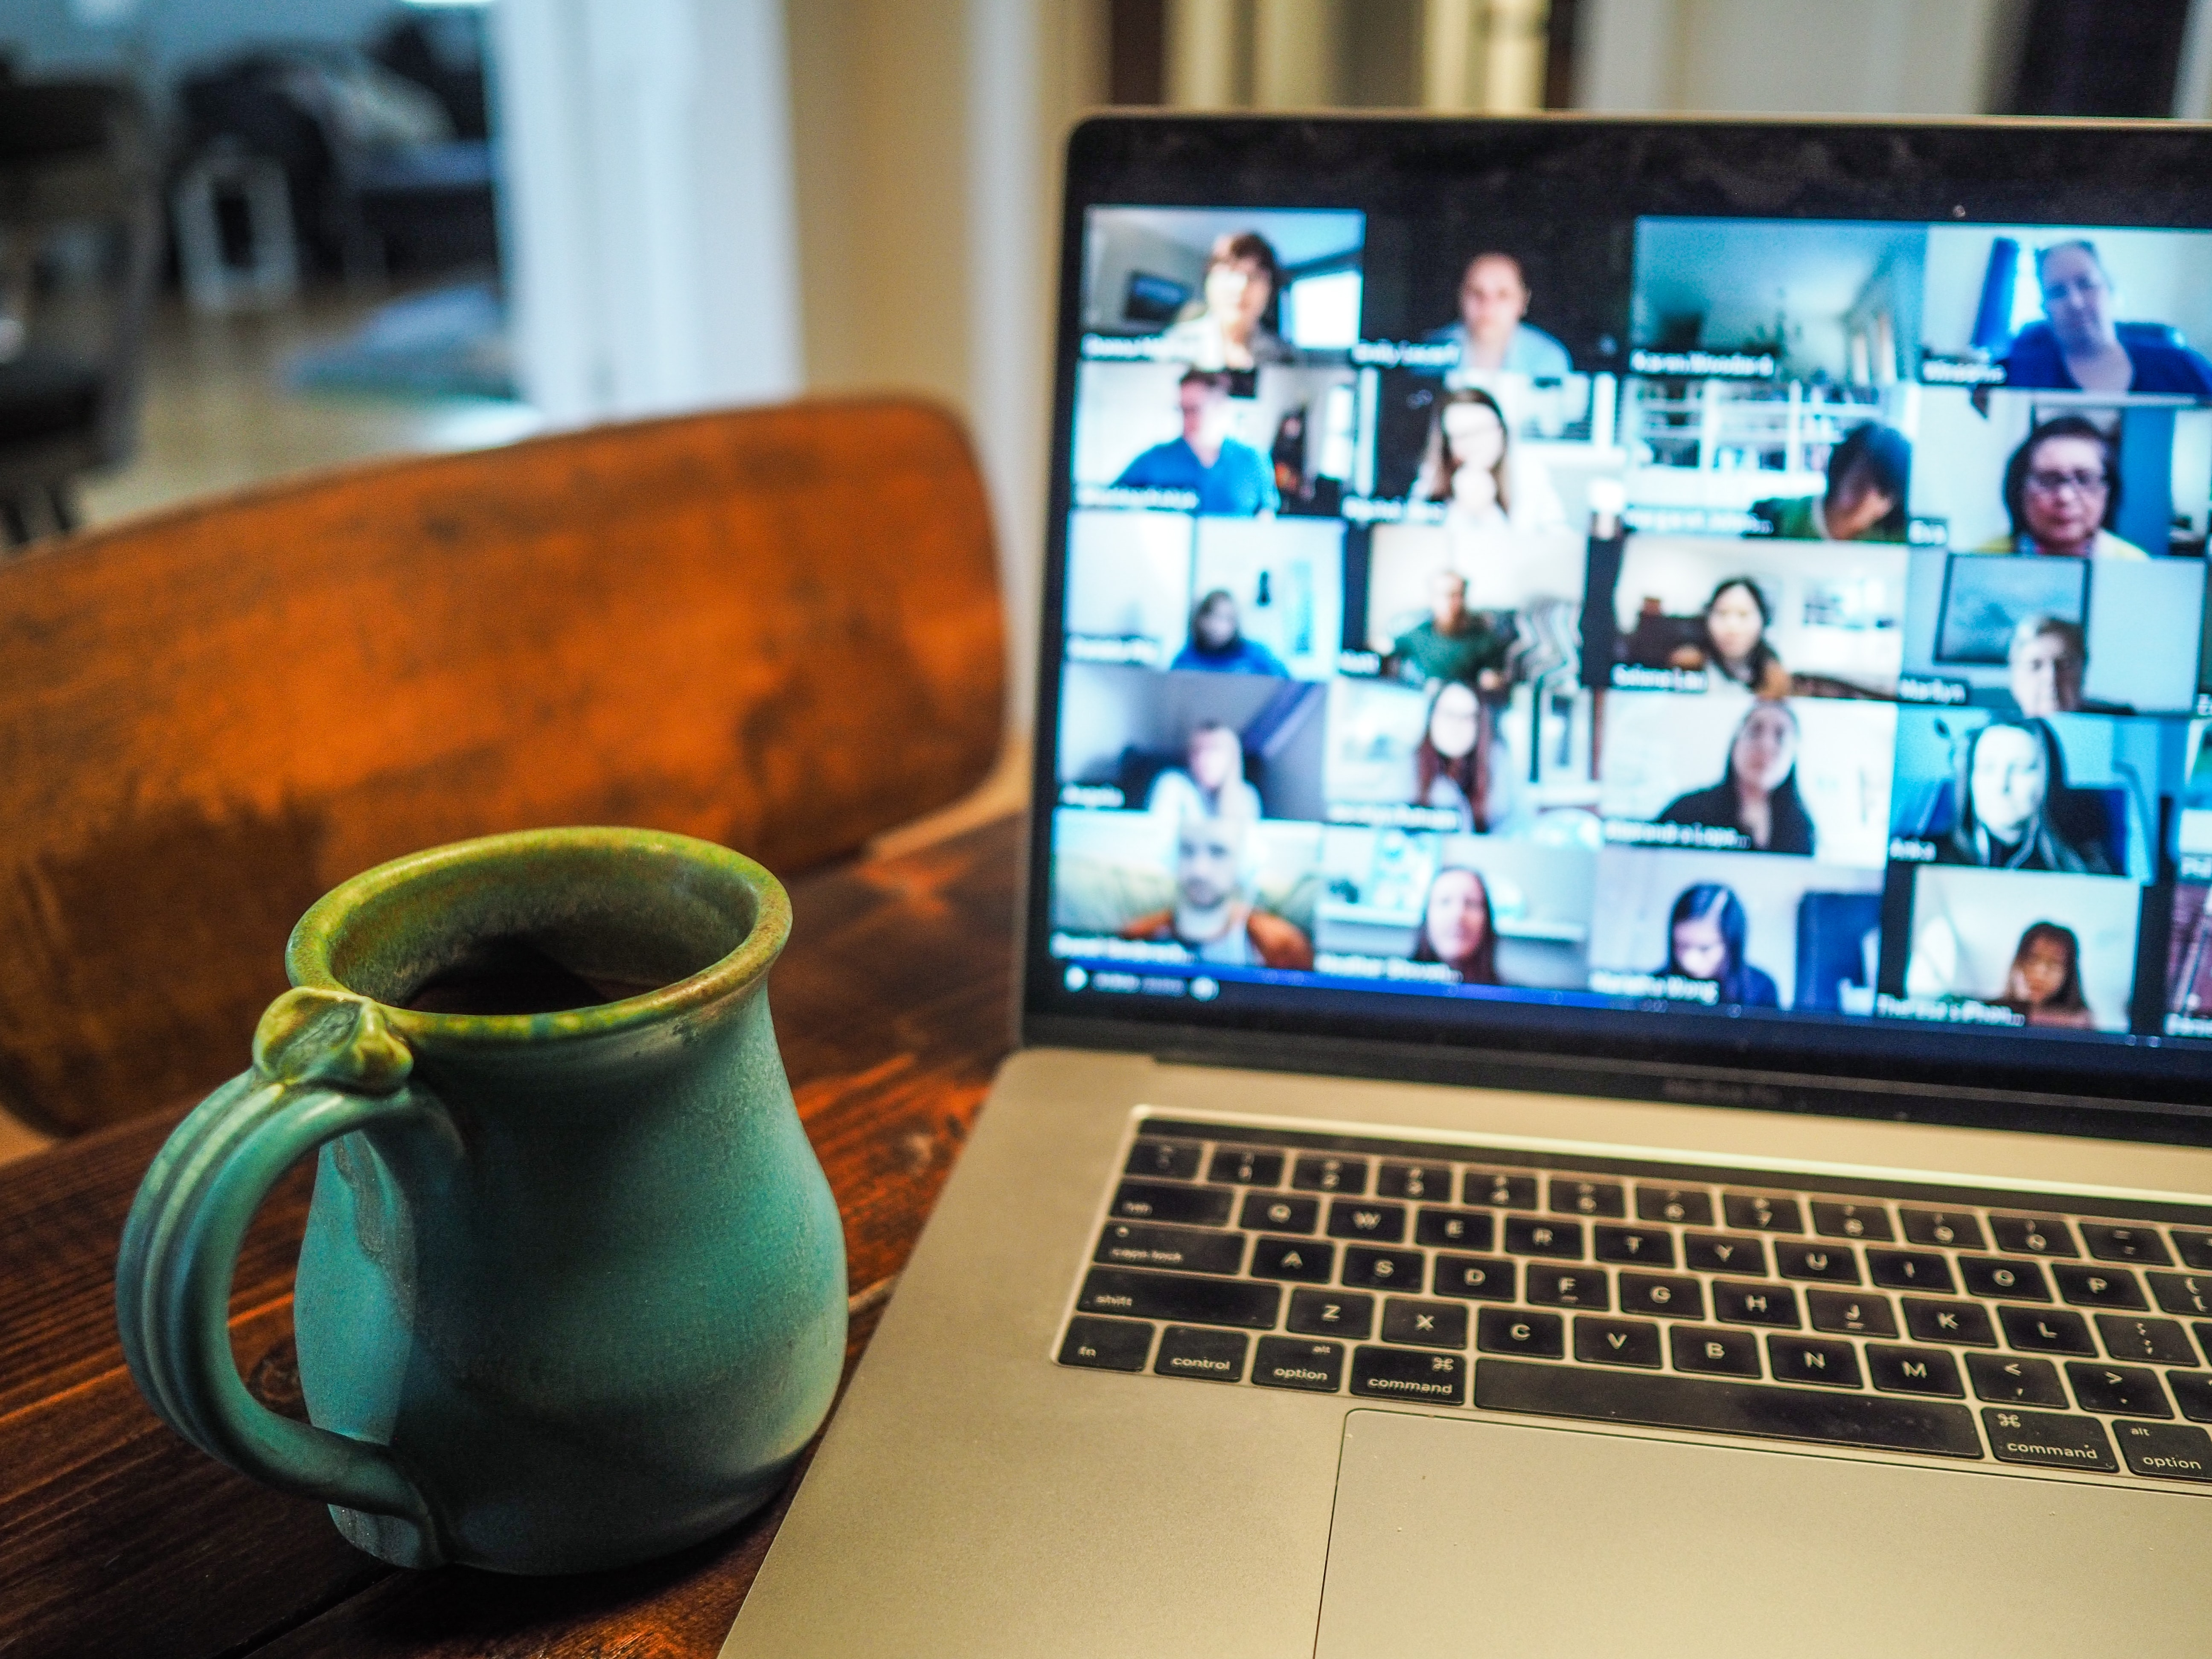 Conferences: Hybrid & Online - what not to miss this Fall